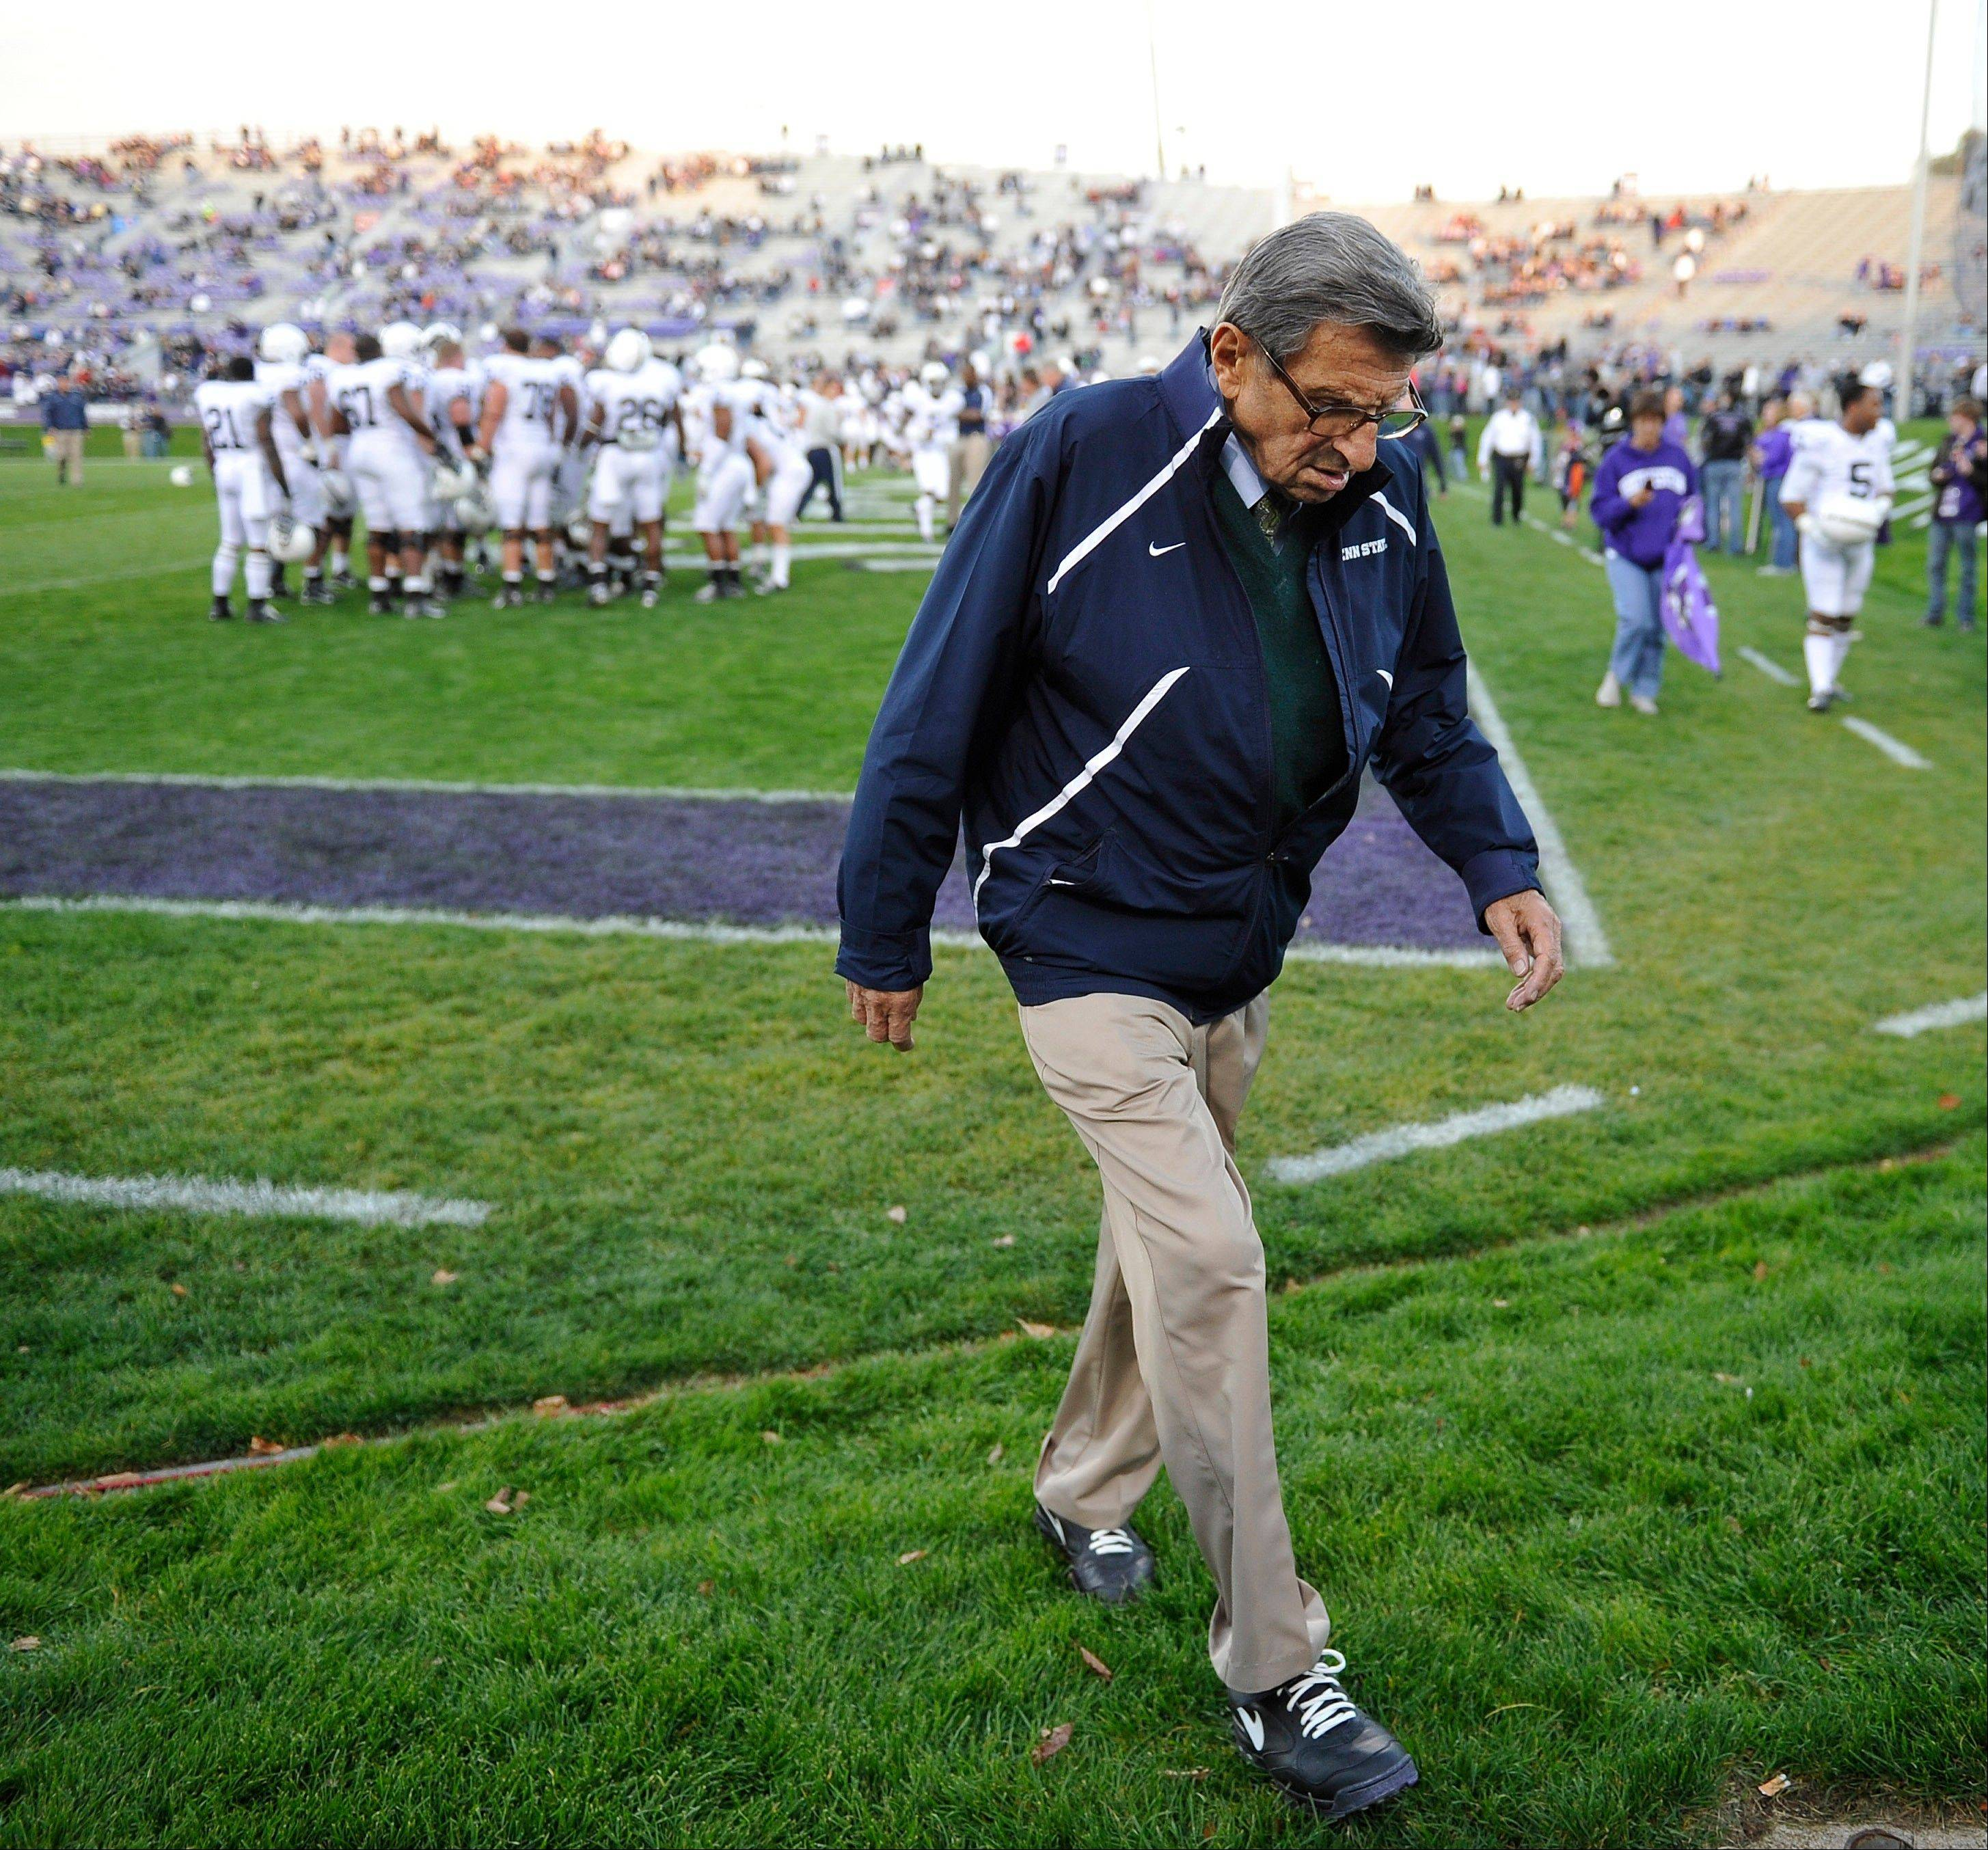 Penn State coach Joe Paterno walks off the field after warmups before